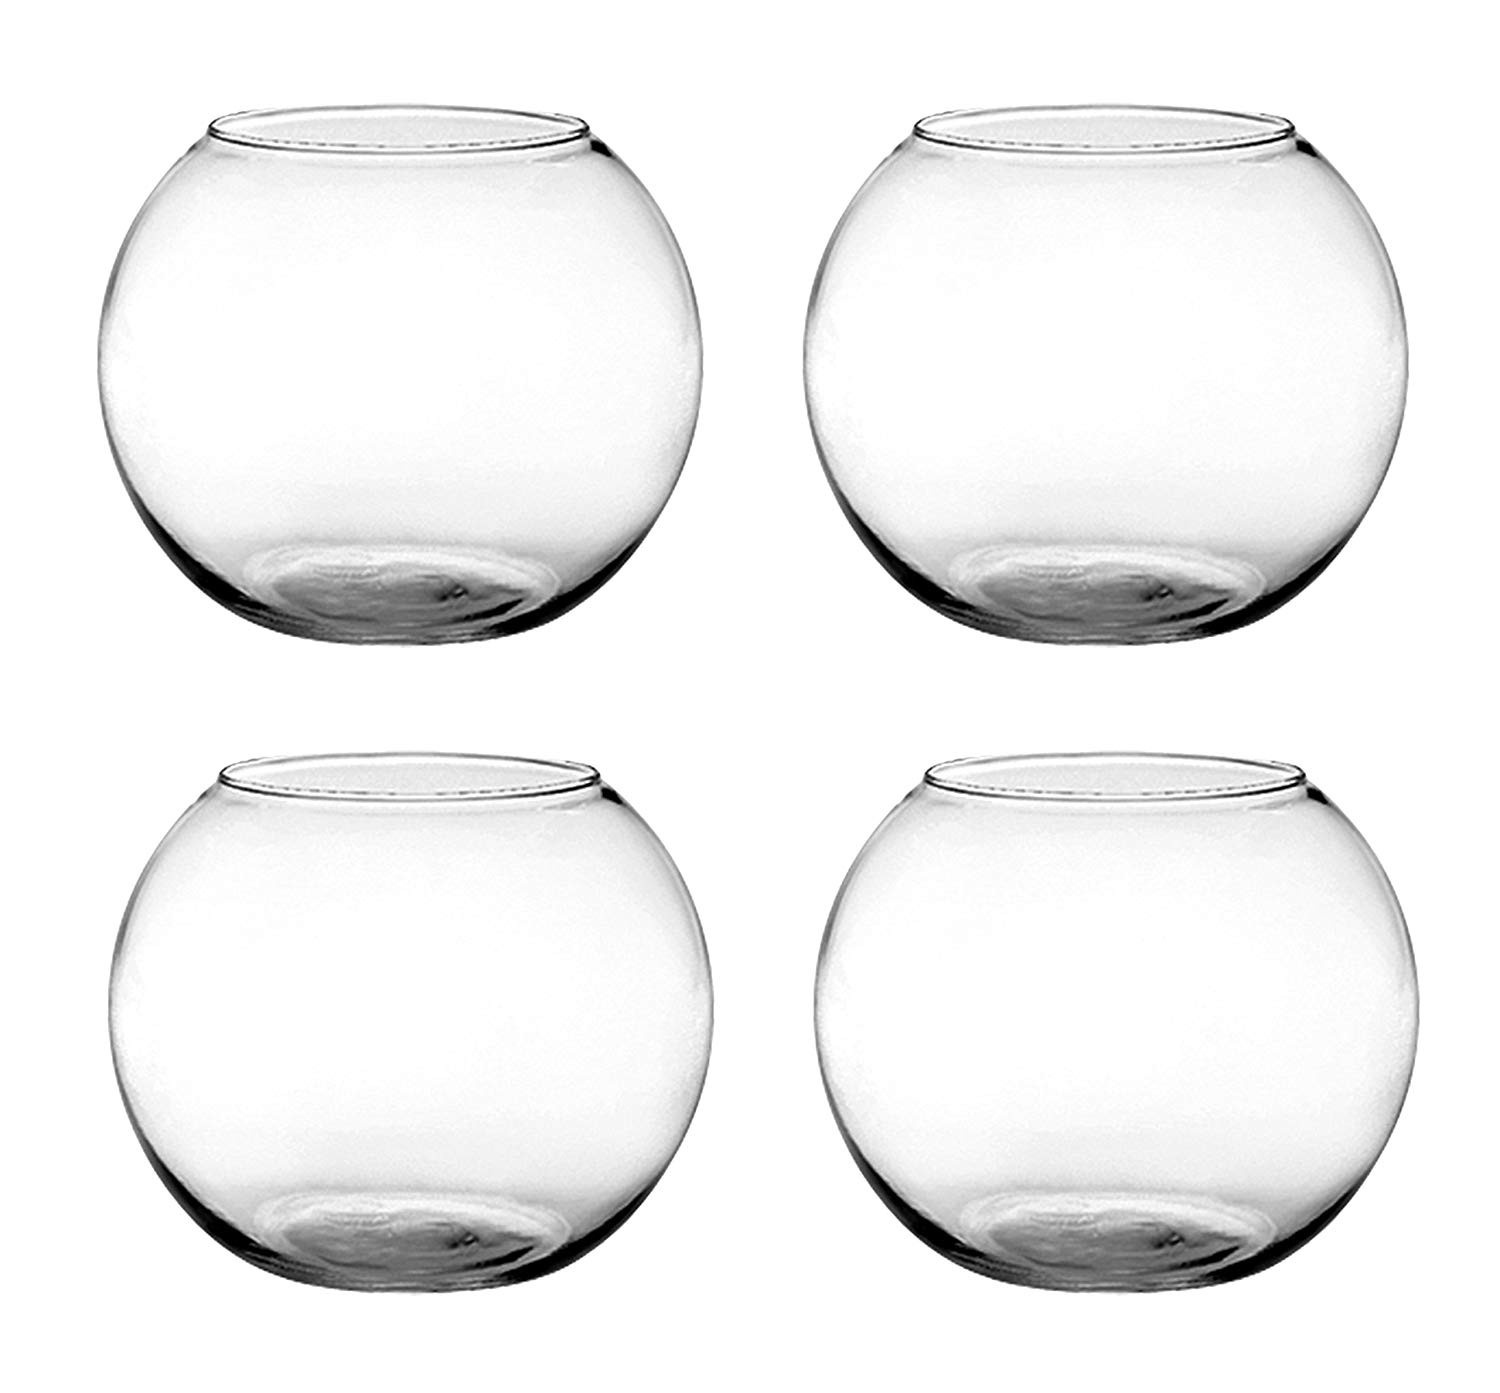 clear glass bubble bowl vase of amazon com set of 4 syndicate sales 6 inches clear rose bowl inside amazon com set of 4 syndicate sales 6 inches clear rose bowl bundled by maven gifts garden outdoor